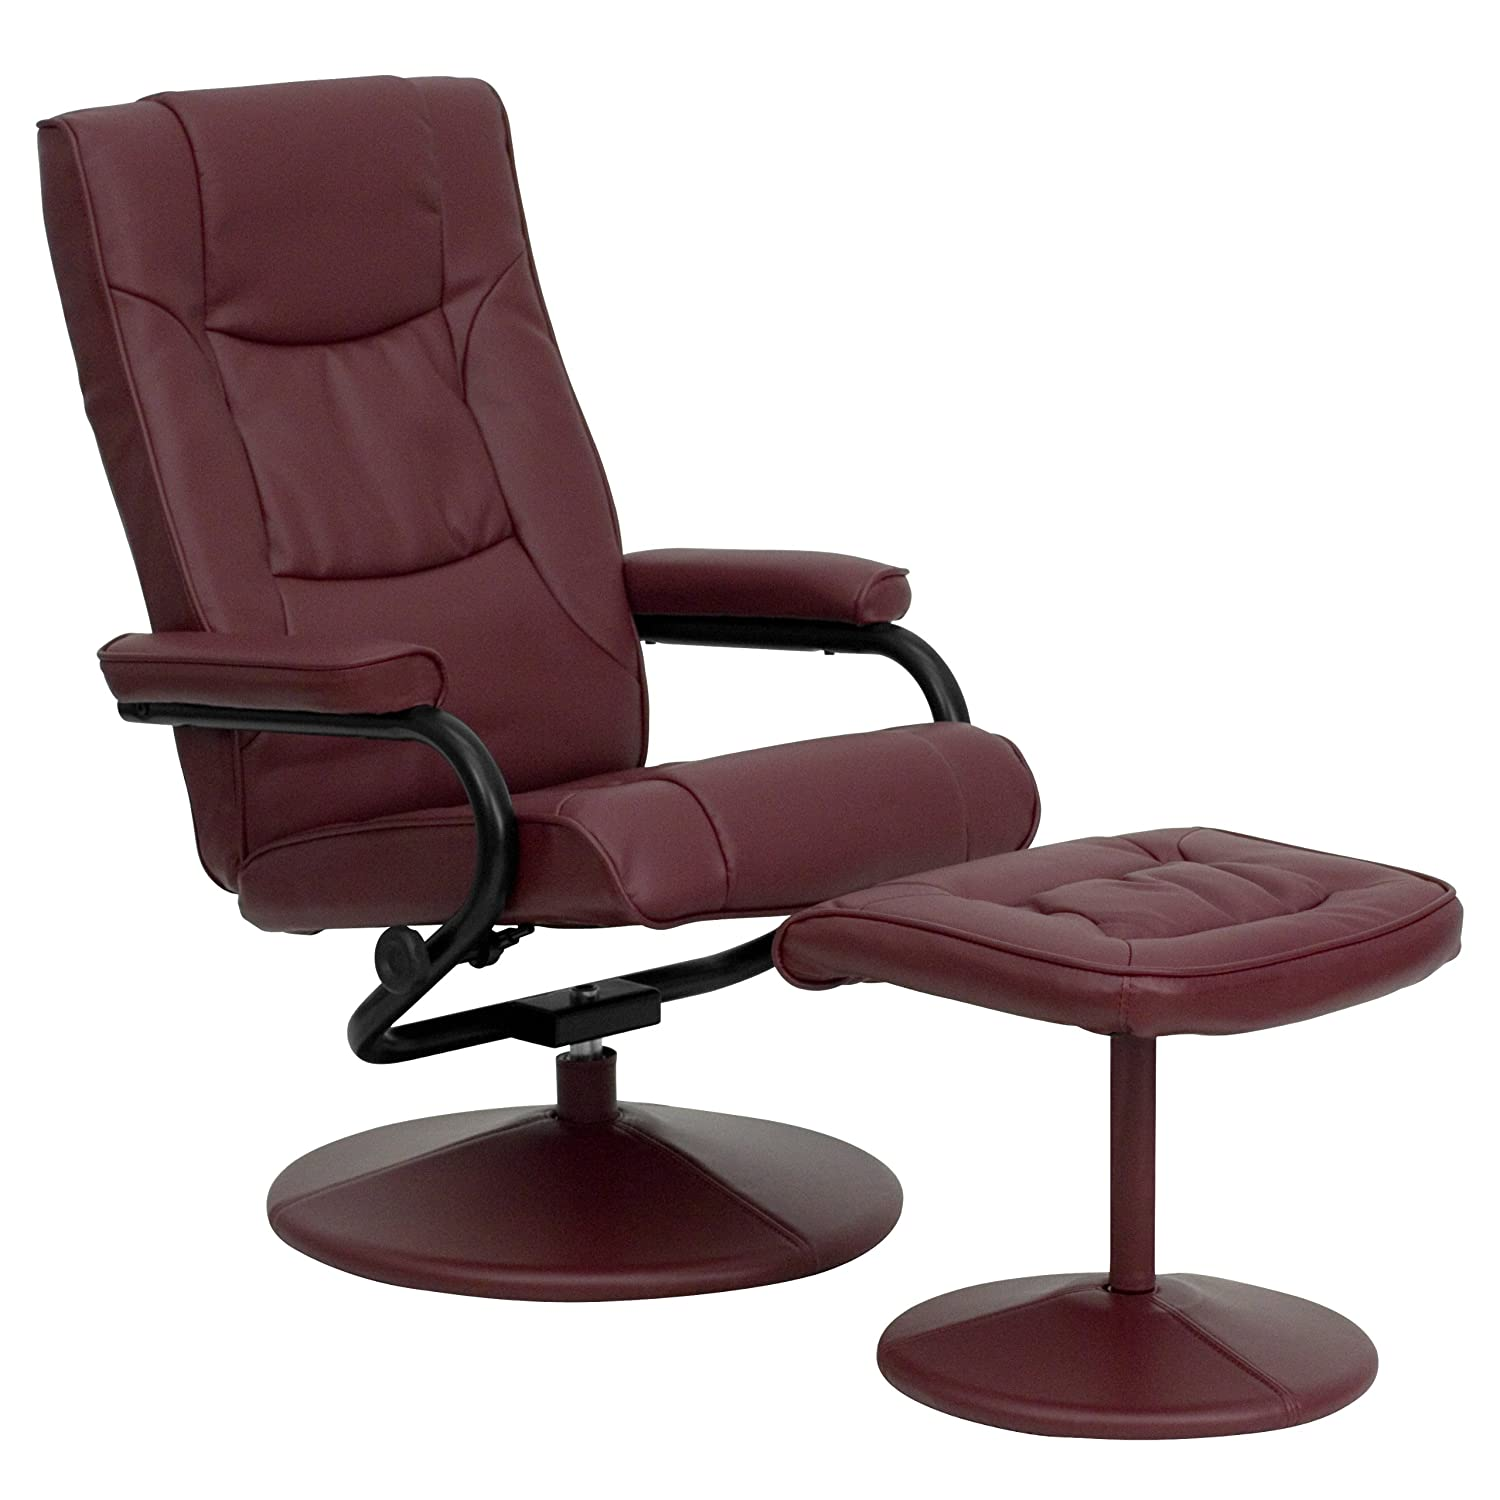 Amazon.com MFO Contemporary Burgundy Leather Recliner and Ottoman with Leather Wrapped Base Kitchen u0026 Dining  sc 1 st  Amazon.com & Amazon.com: MFO Contemporary Burgundy Leather Recliner and Ottoman ... islam-shia.org